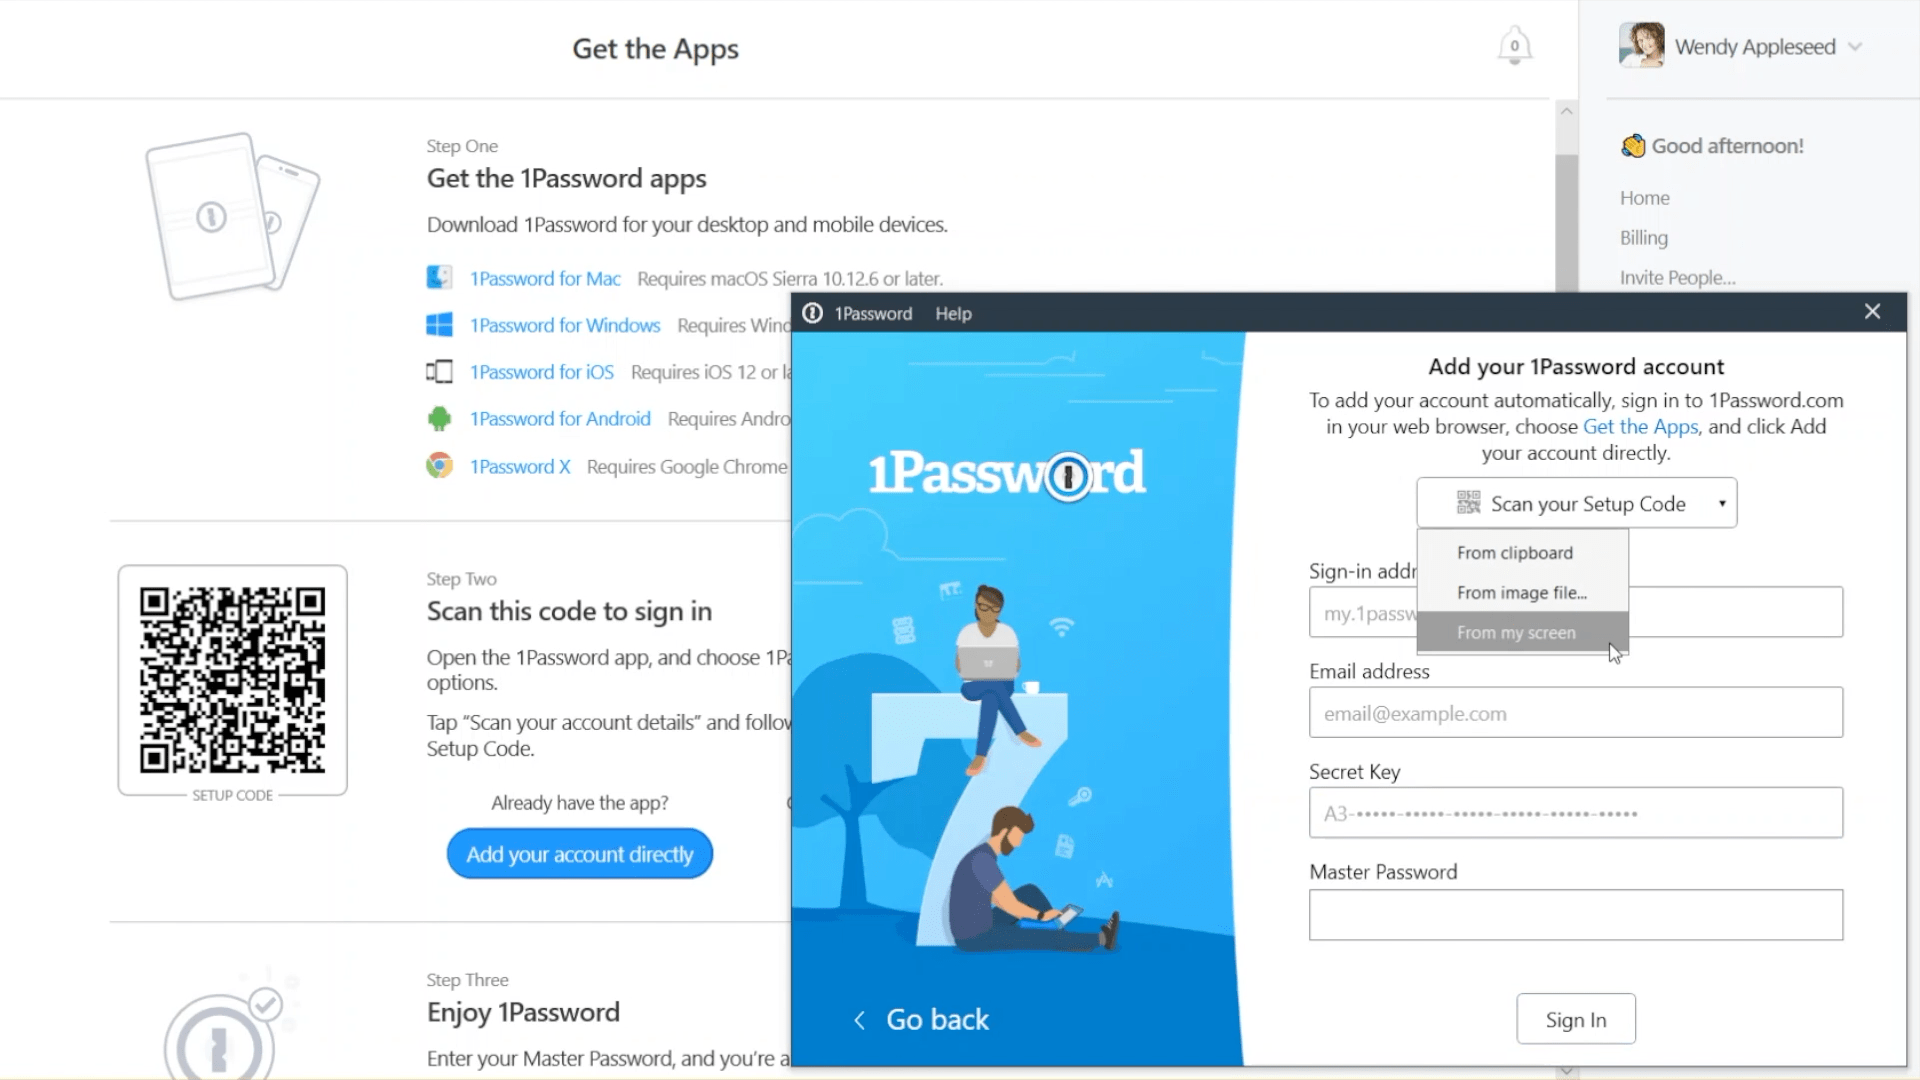 password management, best password manager, password manager chrome, password manager ios, password manager google, password manager android, password manager reviews